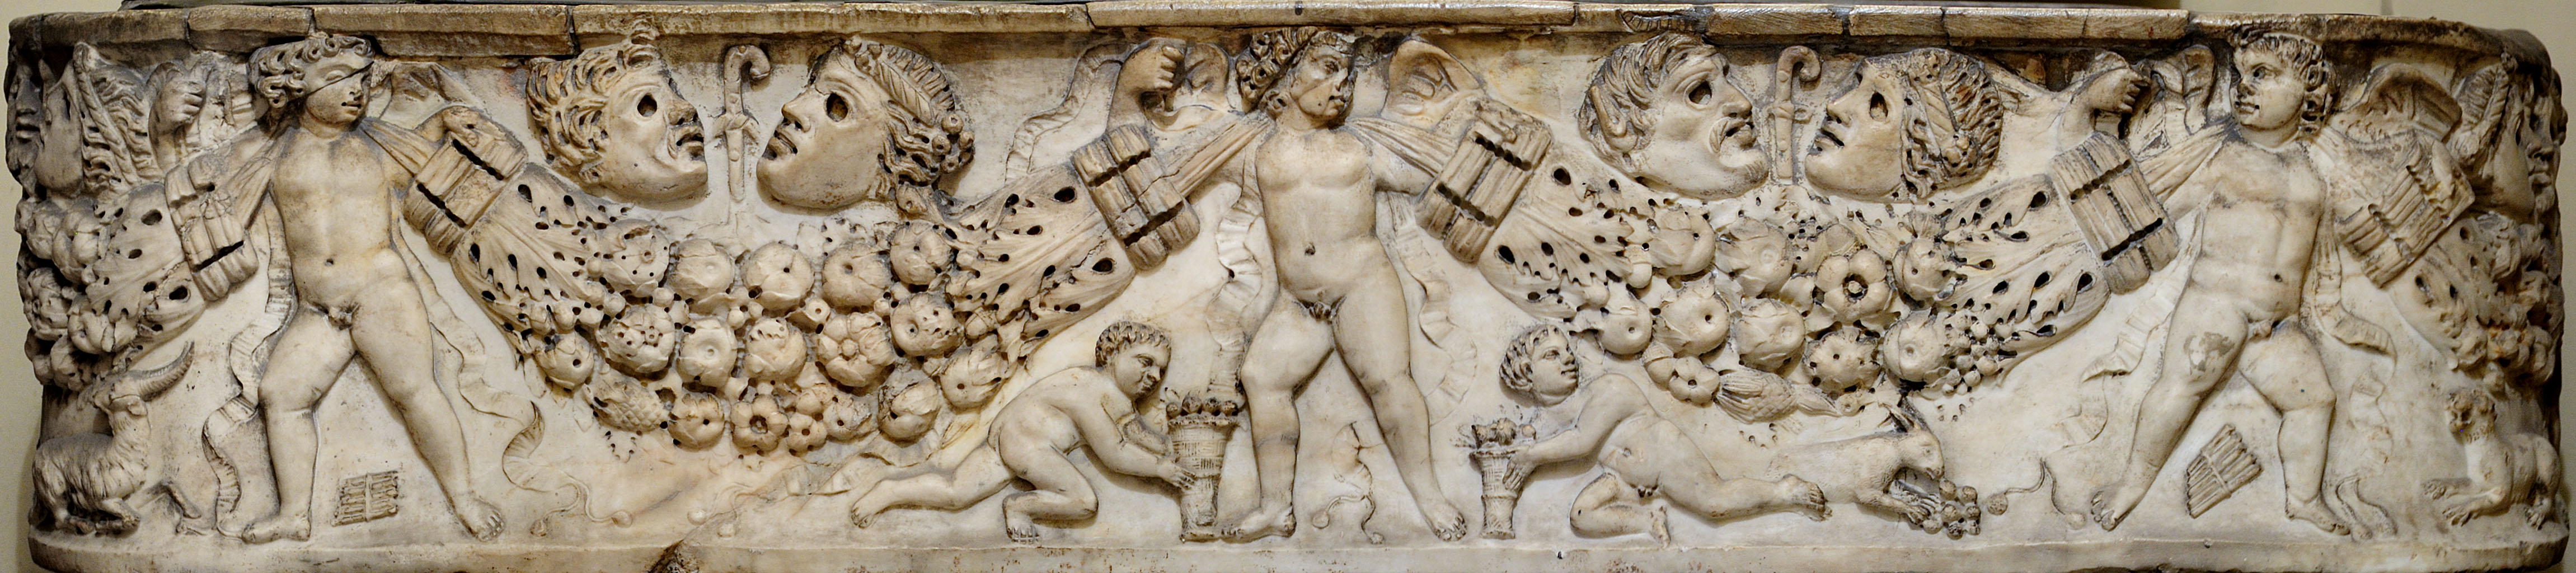 Sarcophagus with Eroses and garlands. White marble. 2nd—3rd cent. CE. Asia Minor. Inv. No. 204. Milan, Poldi Pezzoli Museum